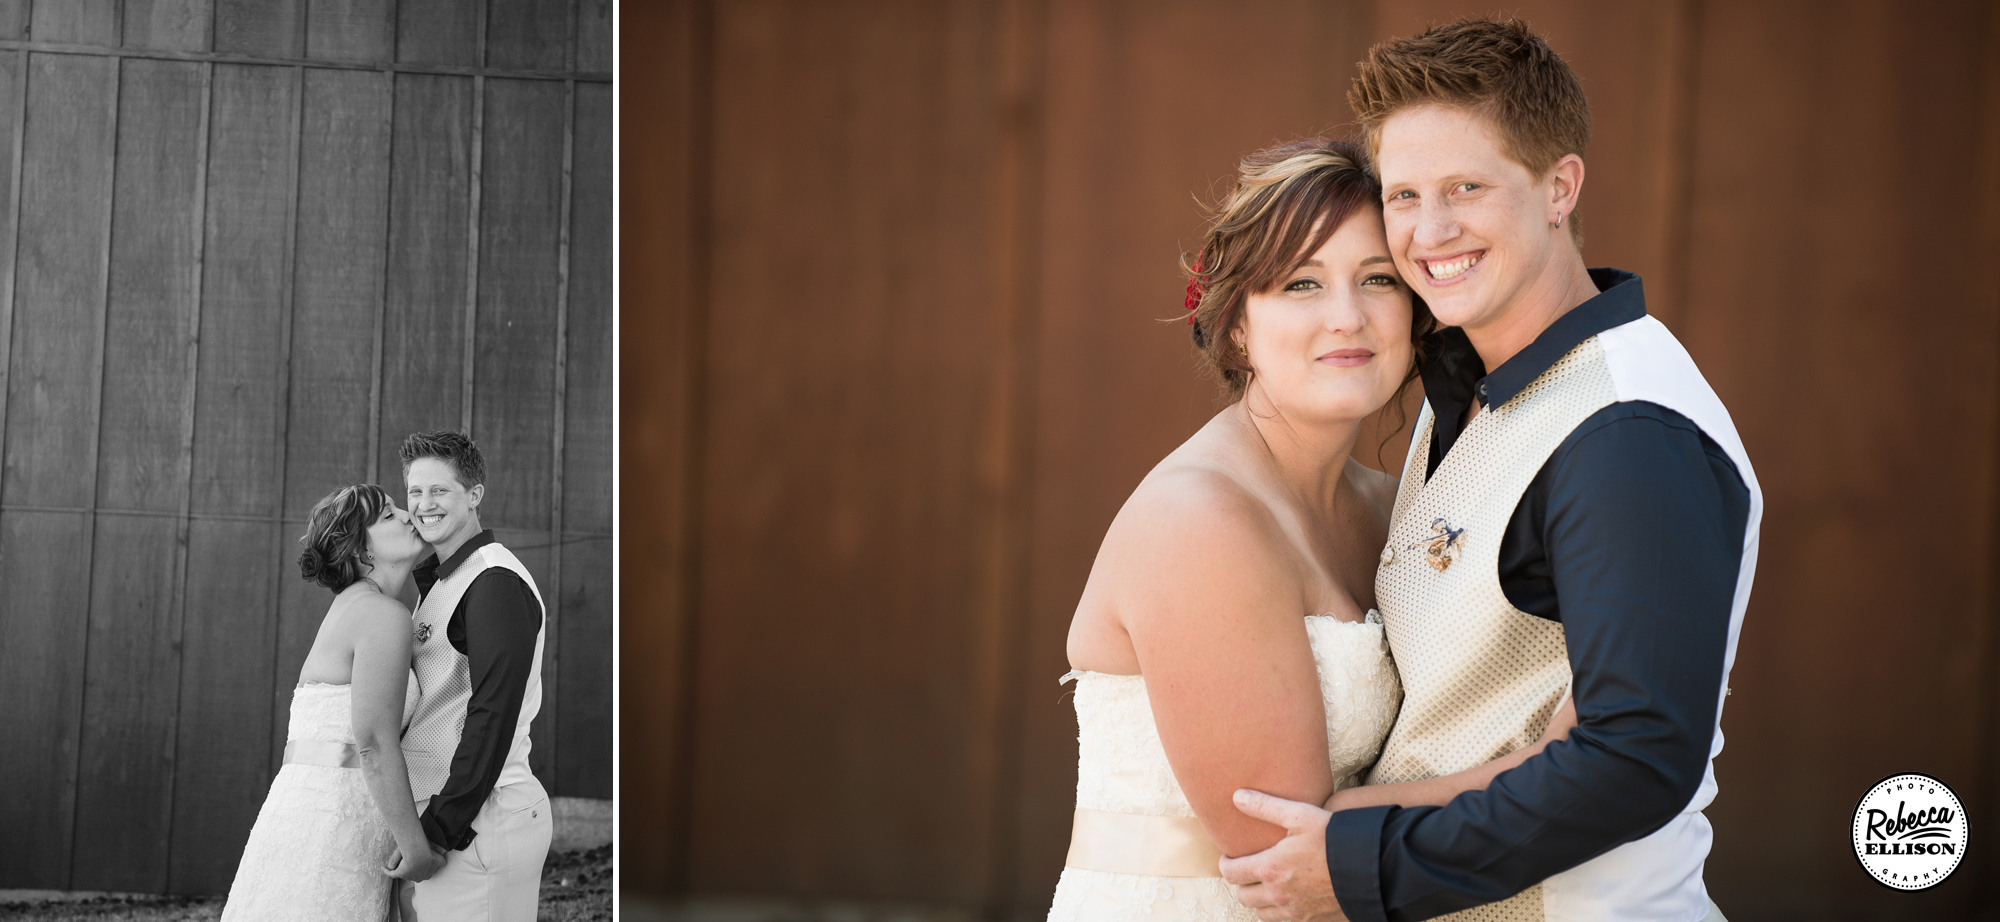 Same Sex wedding portraits in front of a wooden wall photographed by Rebecca Ellison Photography